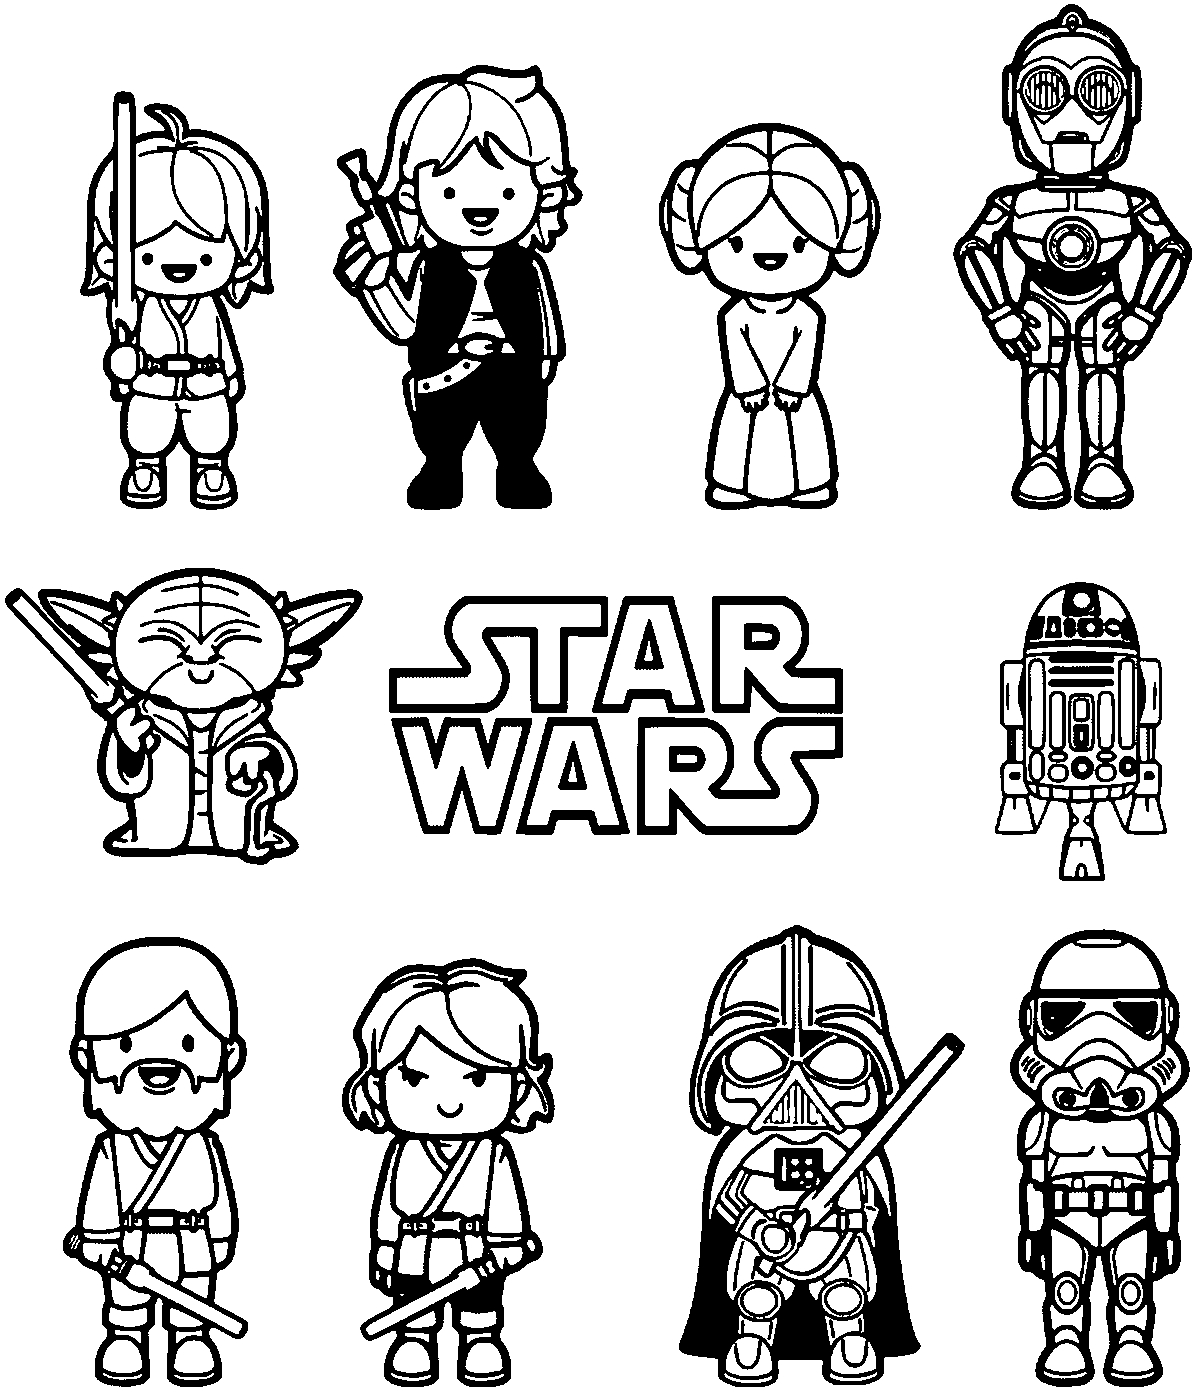 star wars free coloring pages free star wars printable coloring pages bb 8 c2 b5 free coloring star pages wars